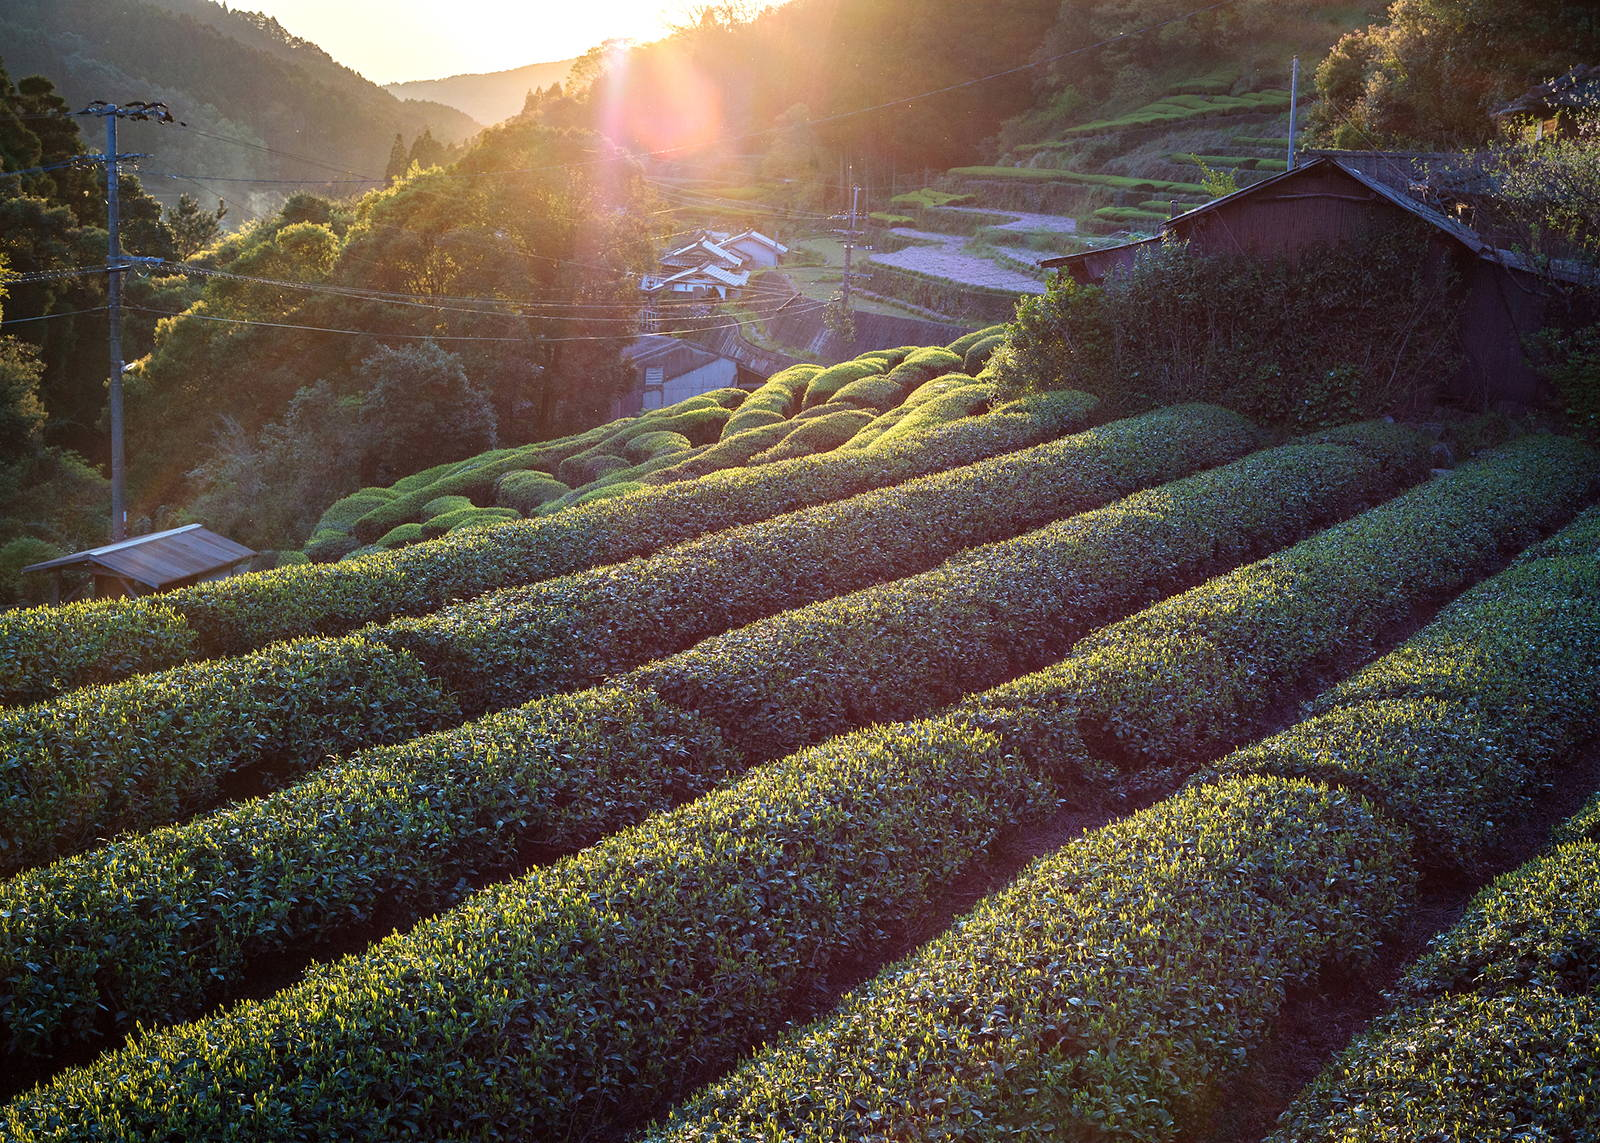 Japanese matcha tea production | Tea farm